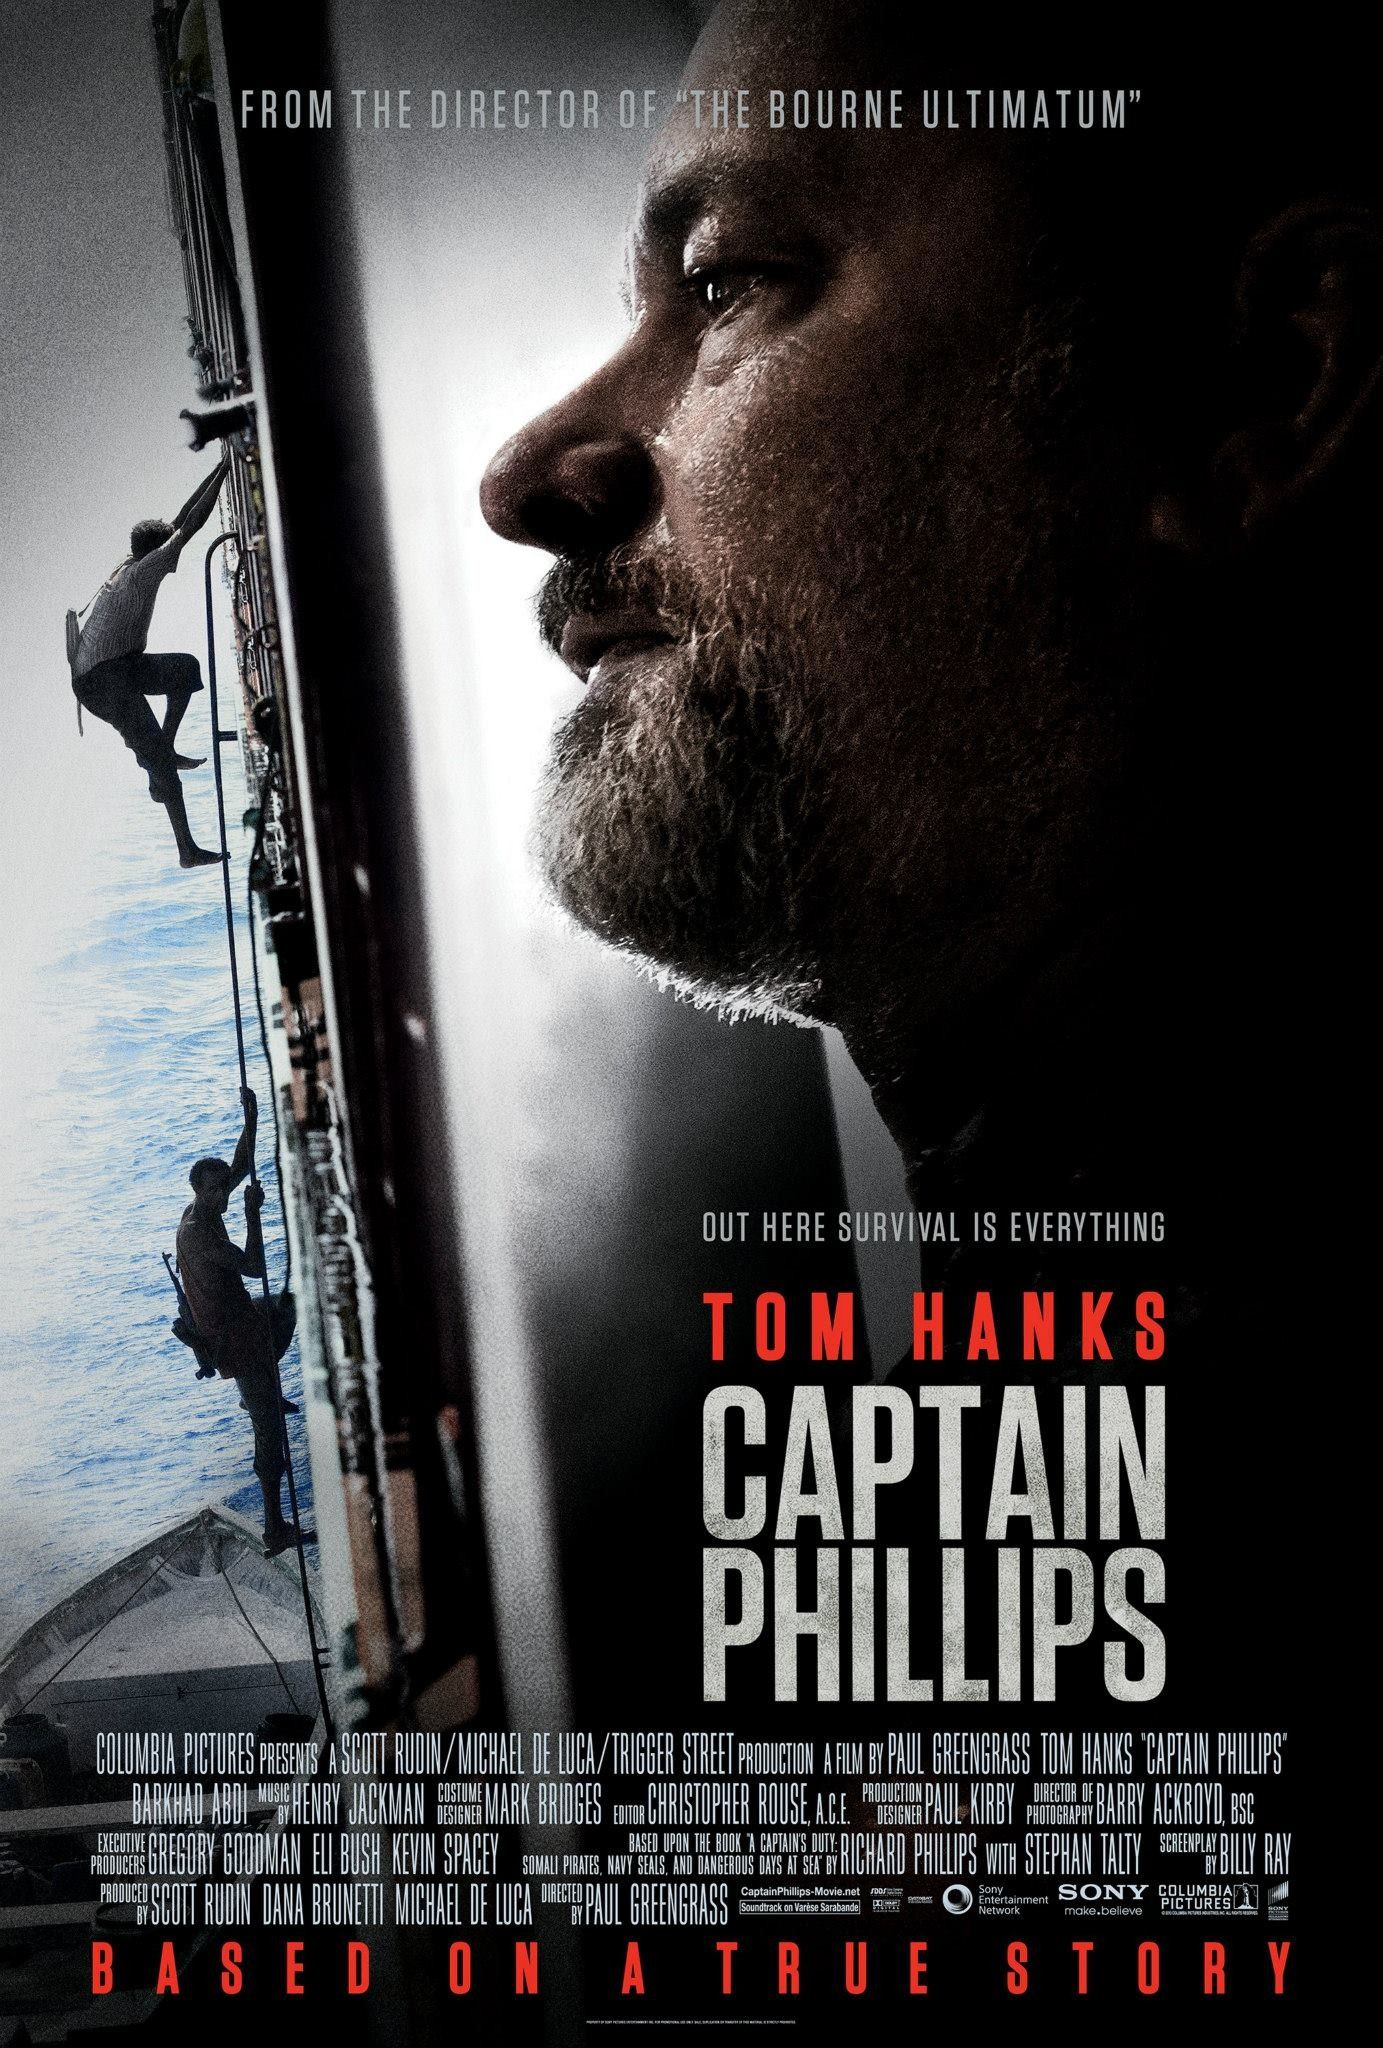 CAPTAIN PHILLIPS Clips. CAPTAIN PHILLIPS Stars Tom Hanks ...